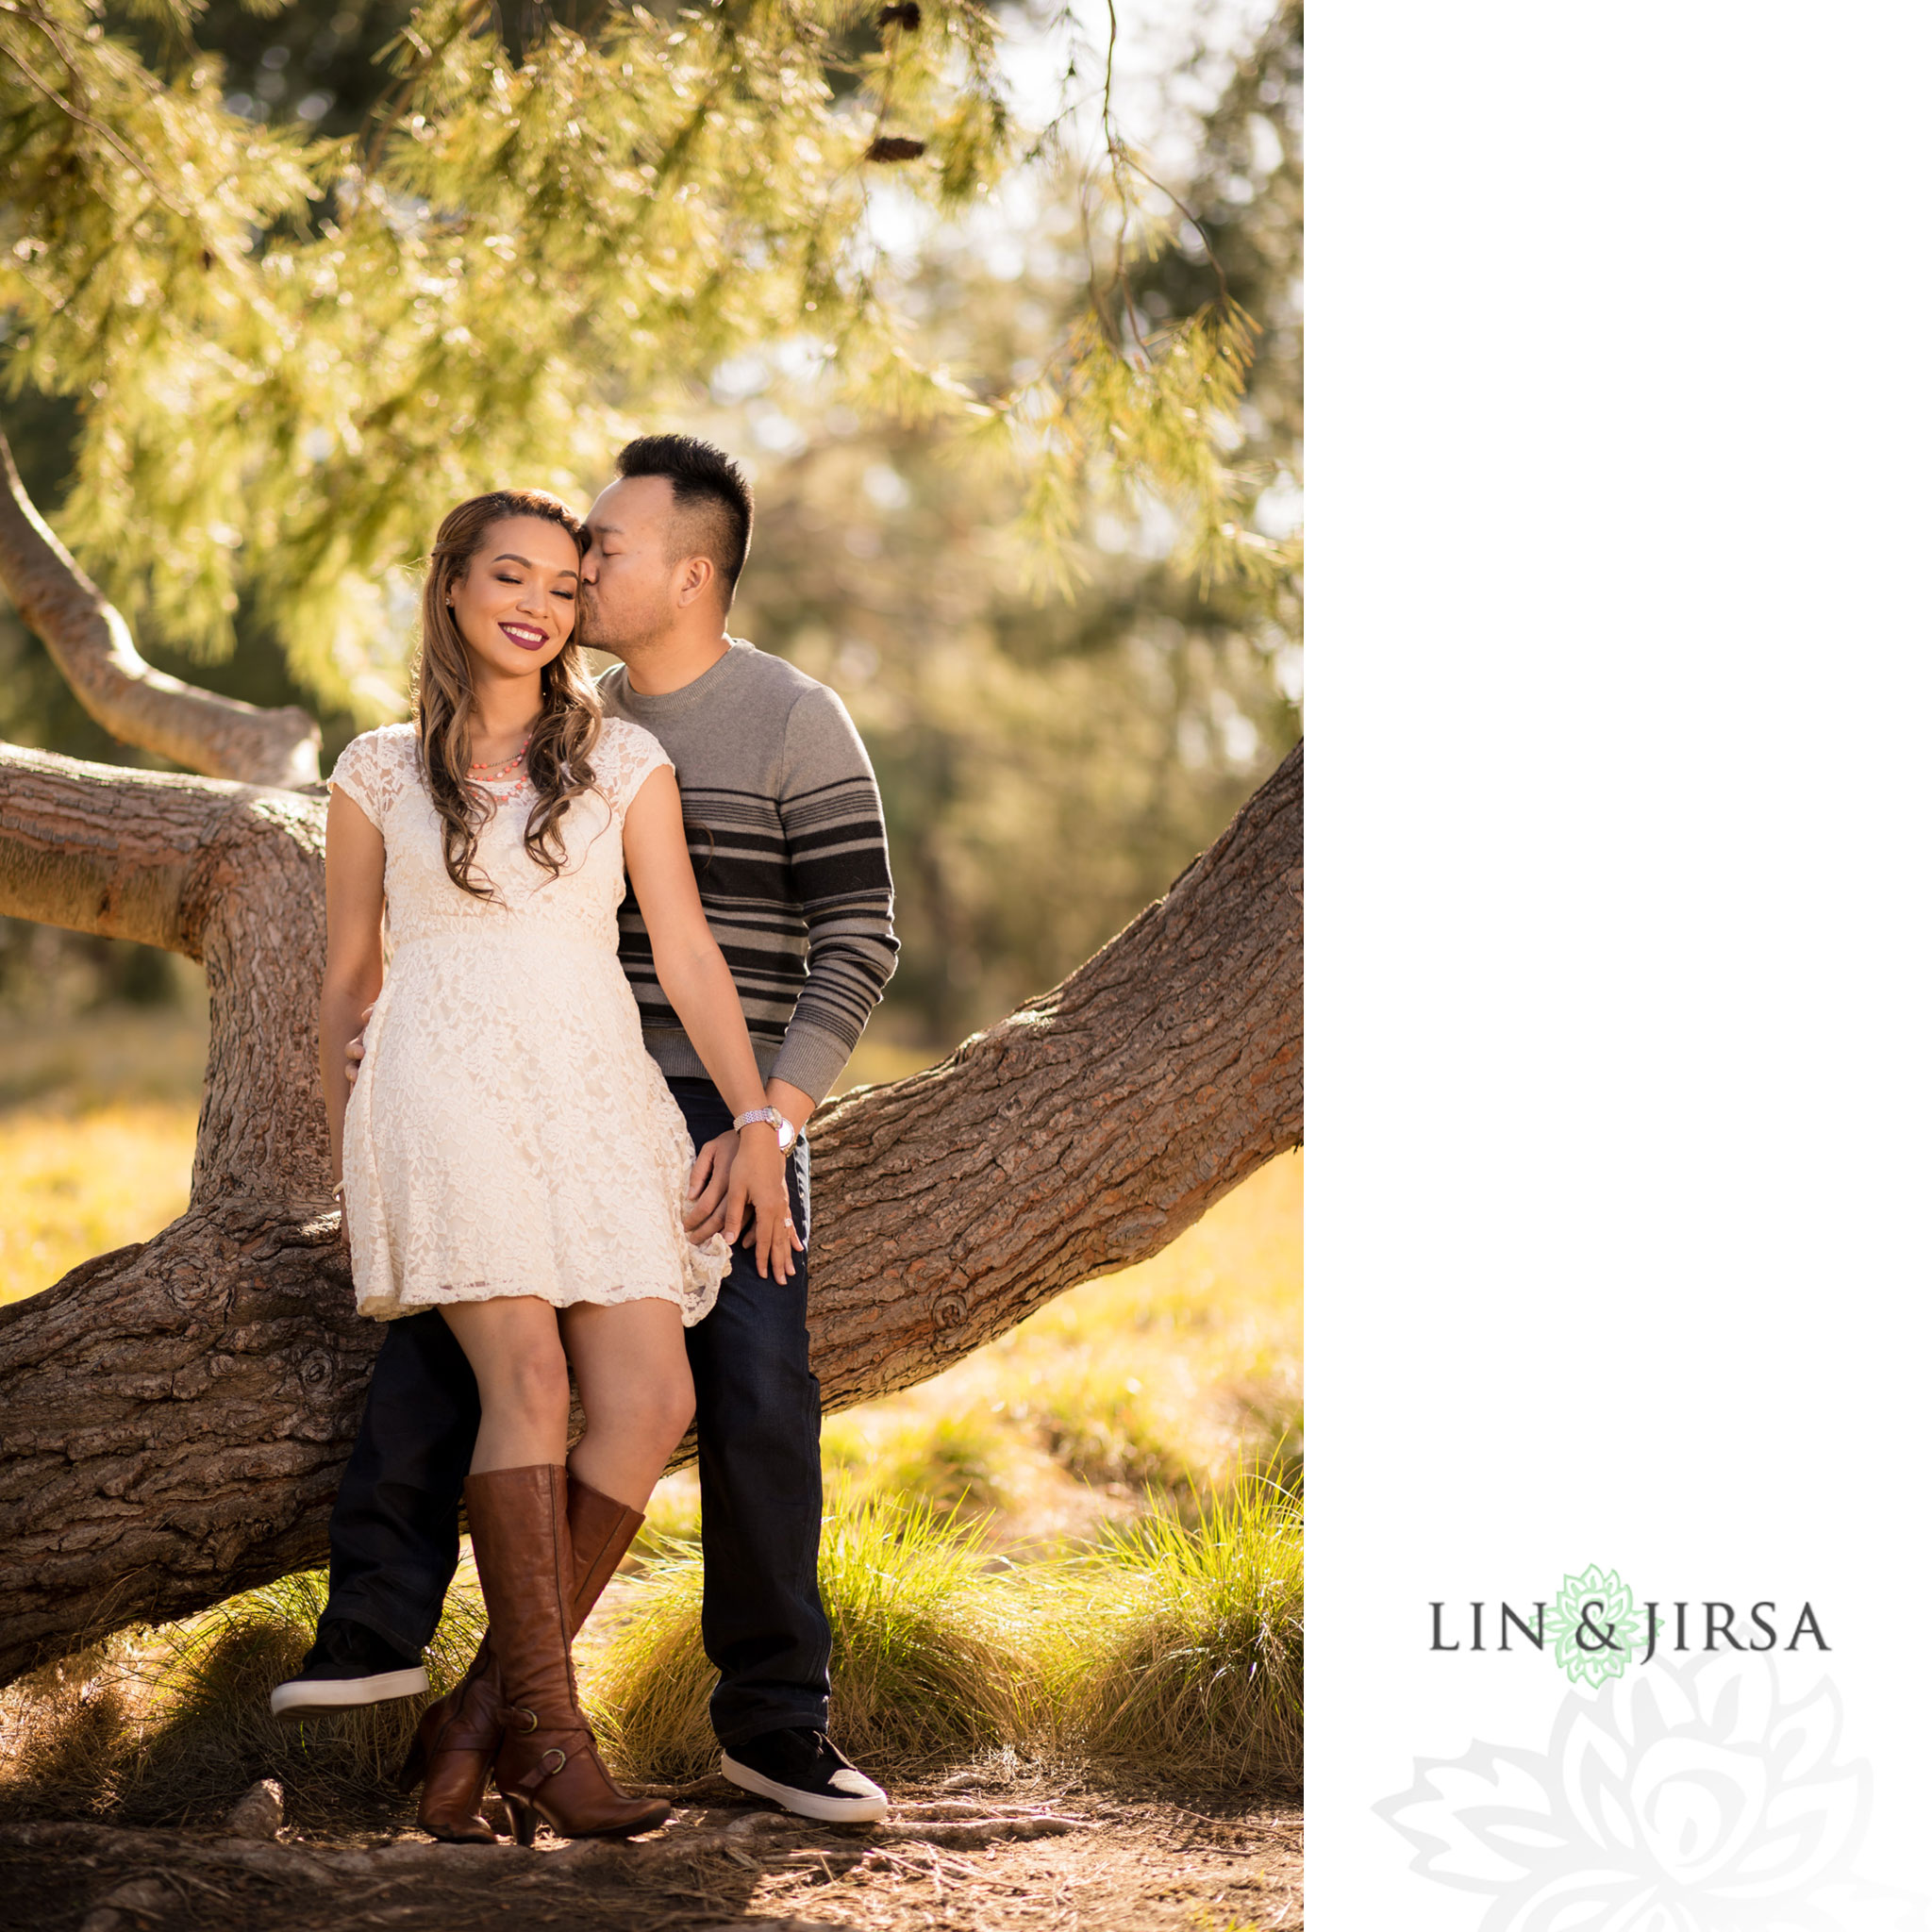 06 jeffrey open space trail orange county engagement photography